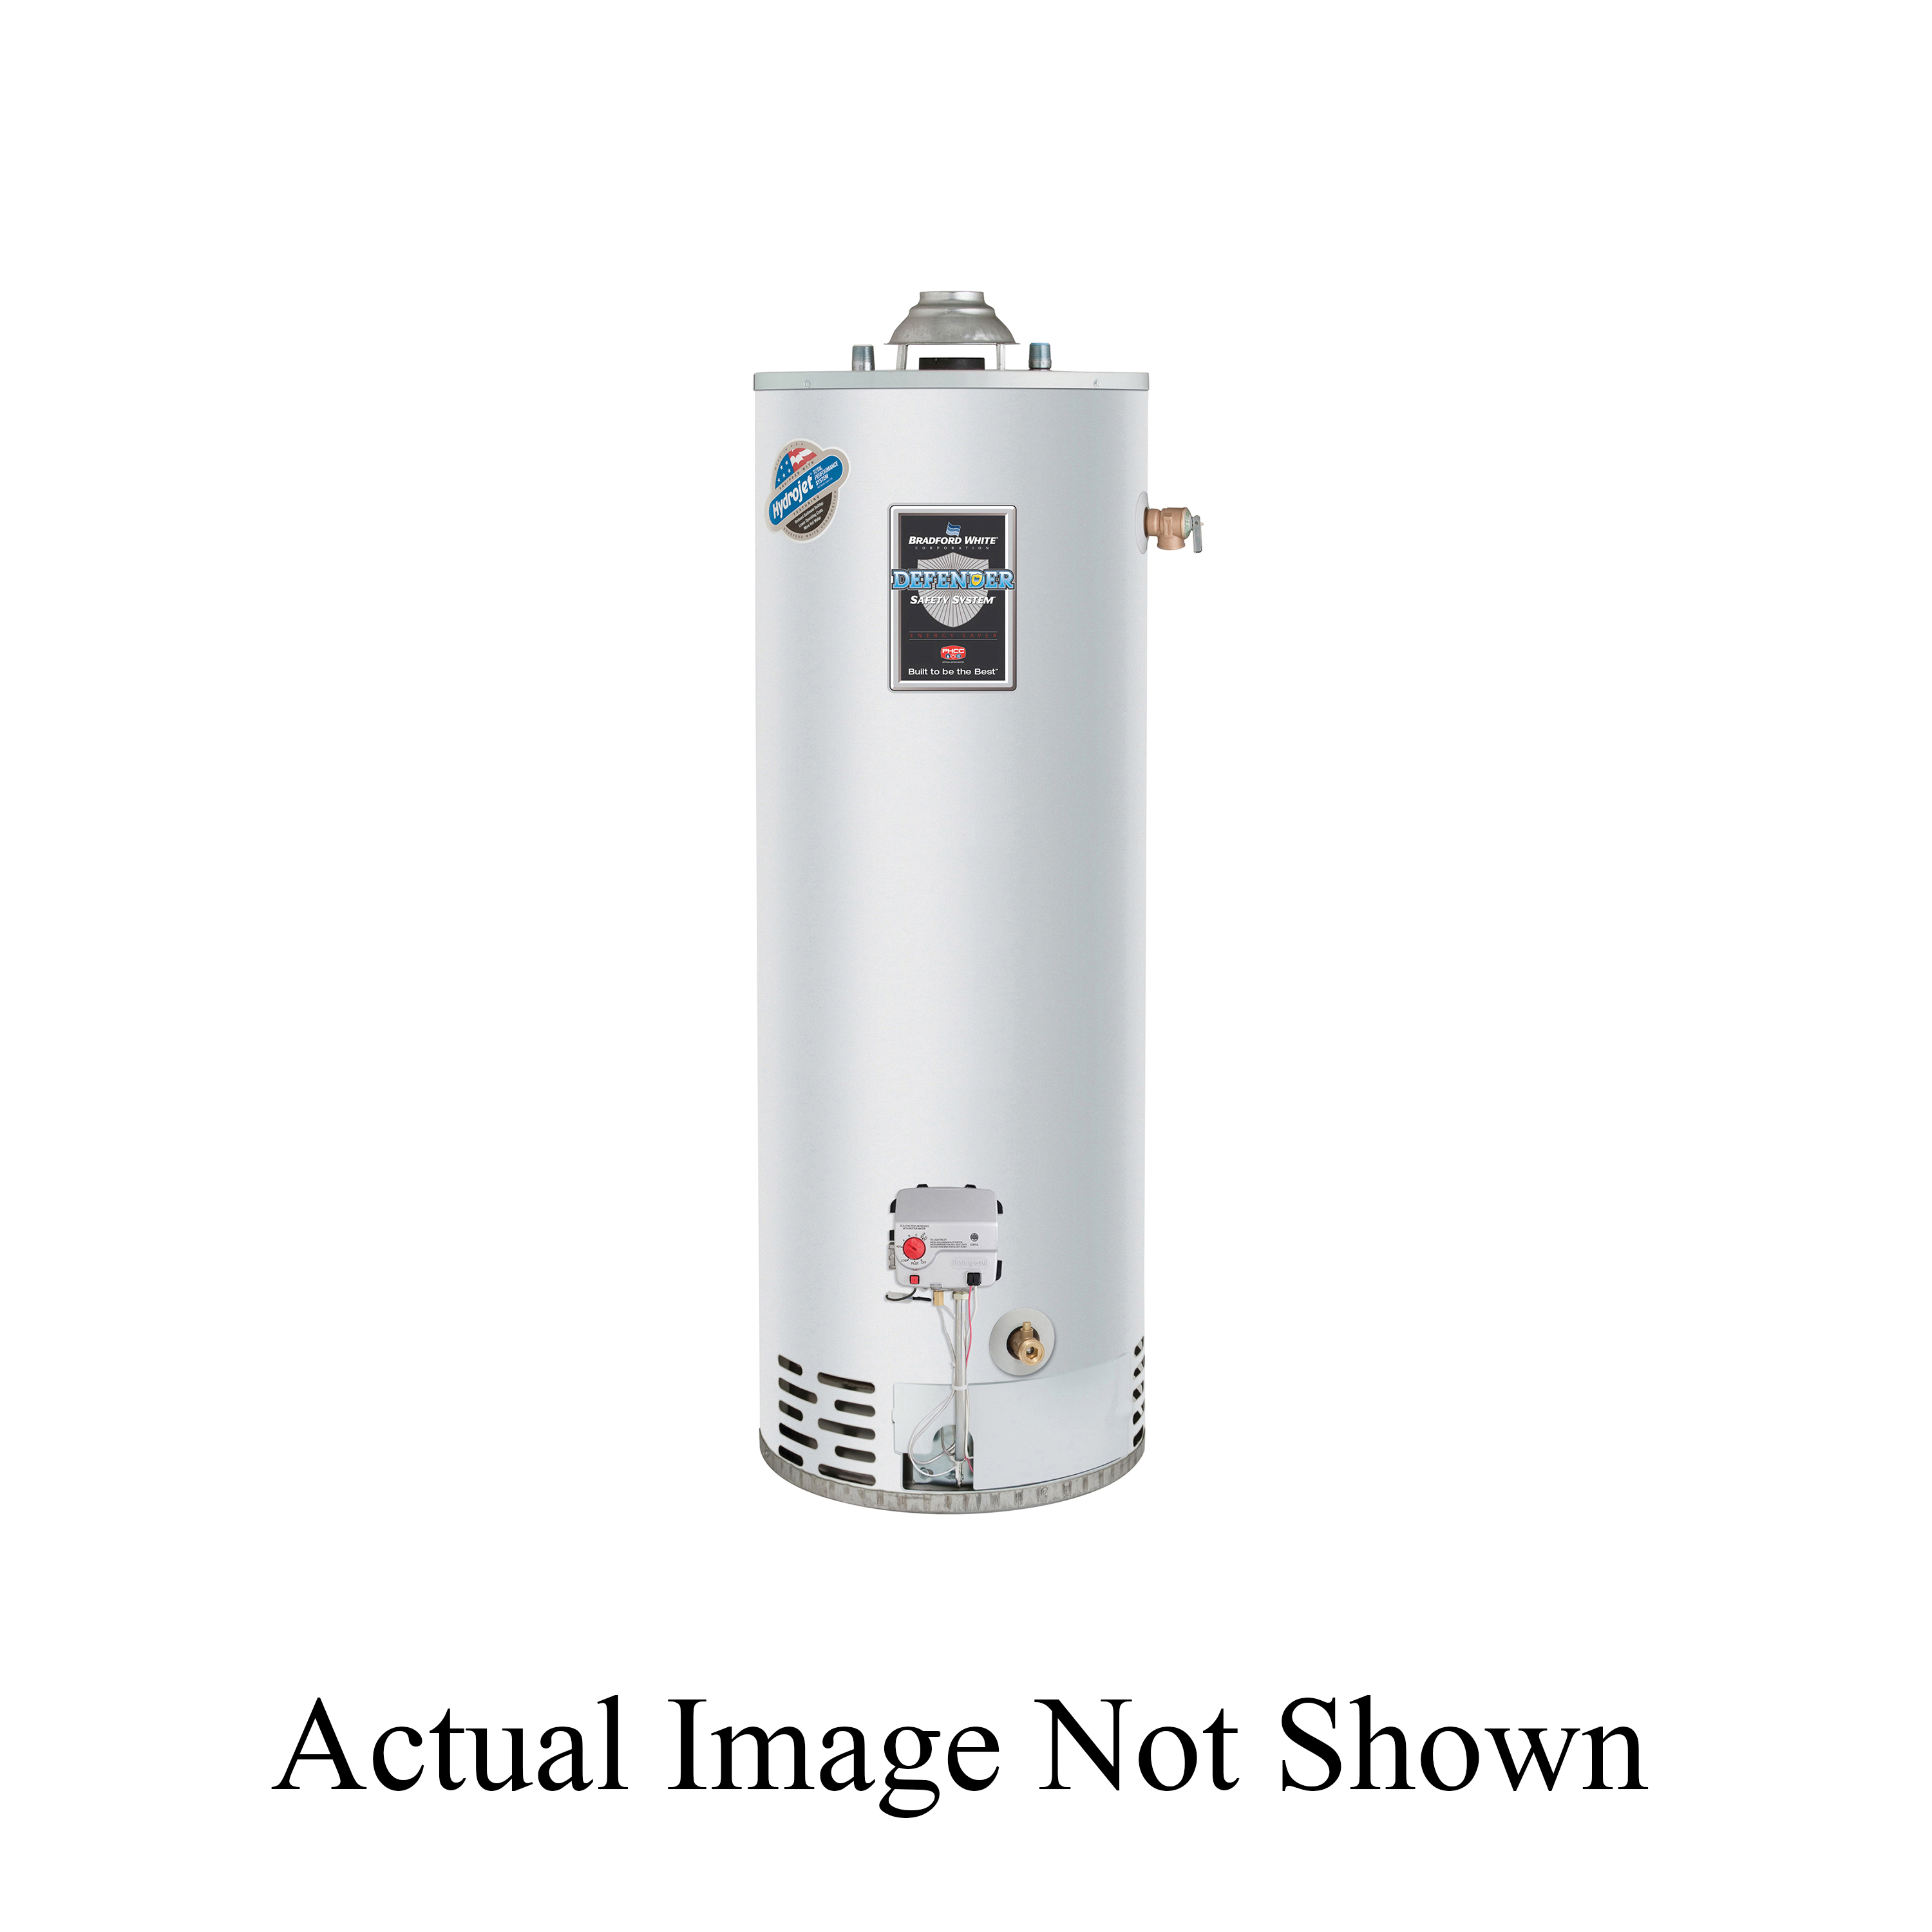 Bradford White Defender Safety System RG150T6N-394 Gas Water Heater, 34000 Btu/hr Heating, 50 gal Tank, Natural Gas Fuel, Atmospheric Vent